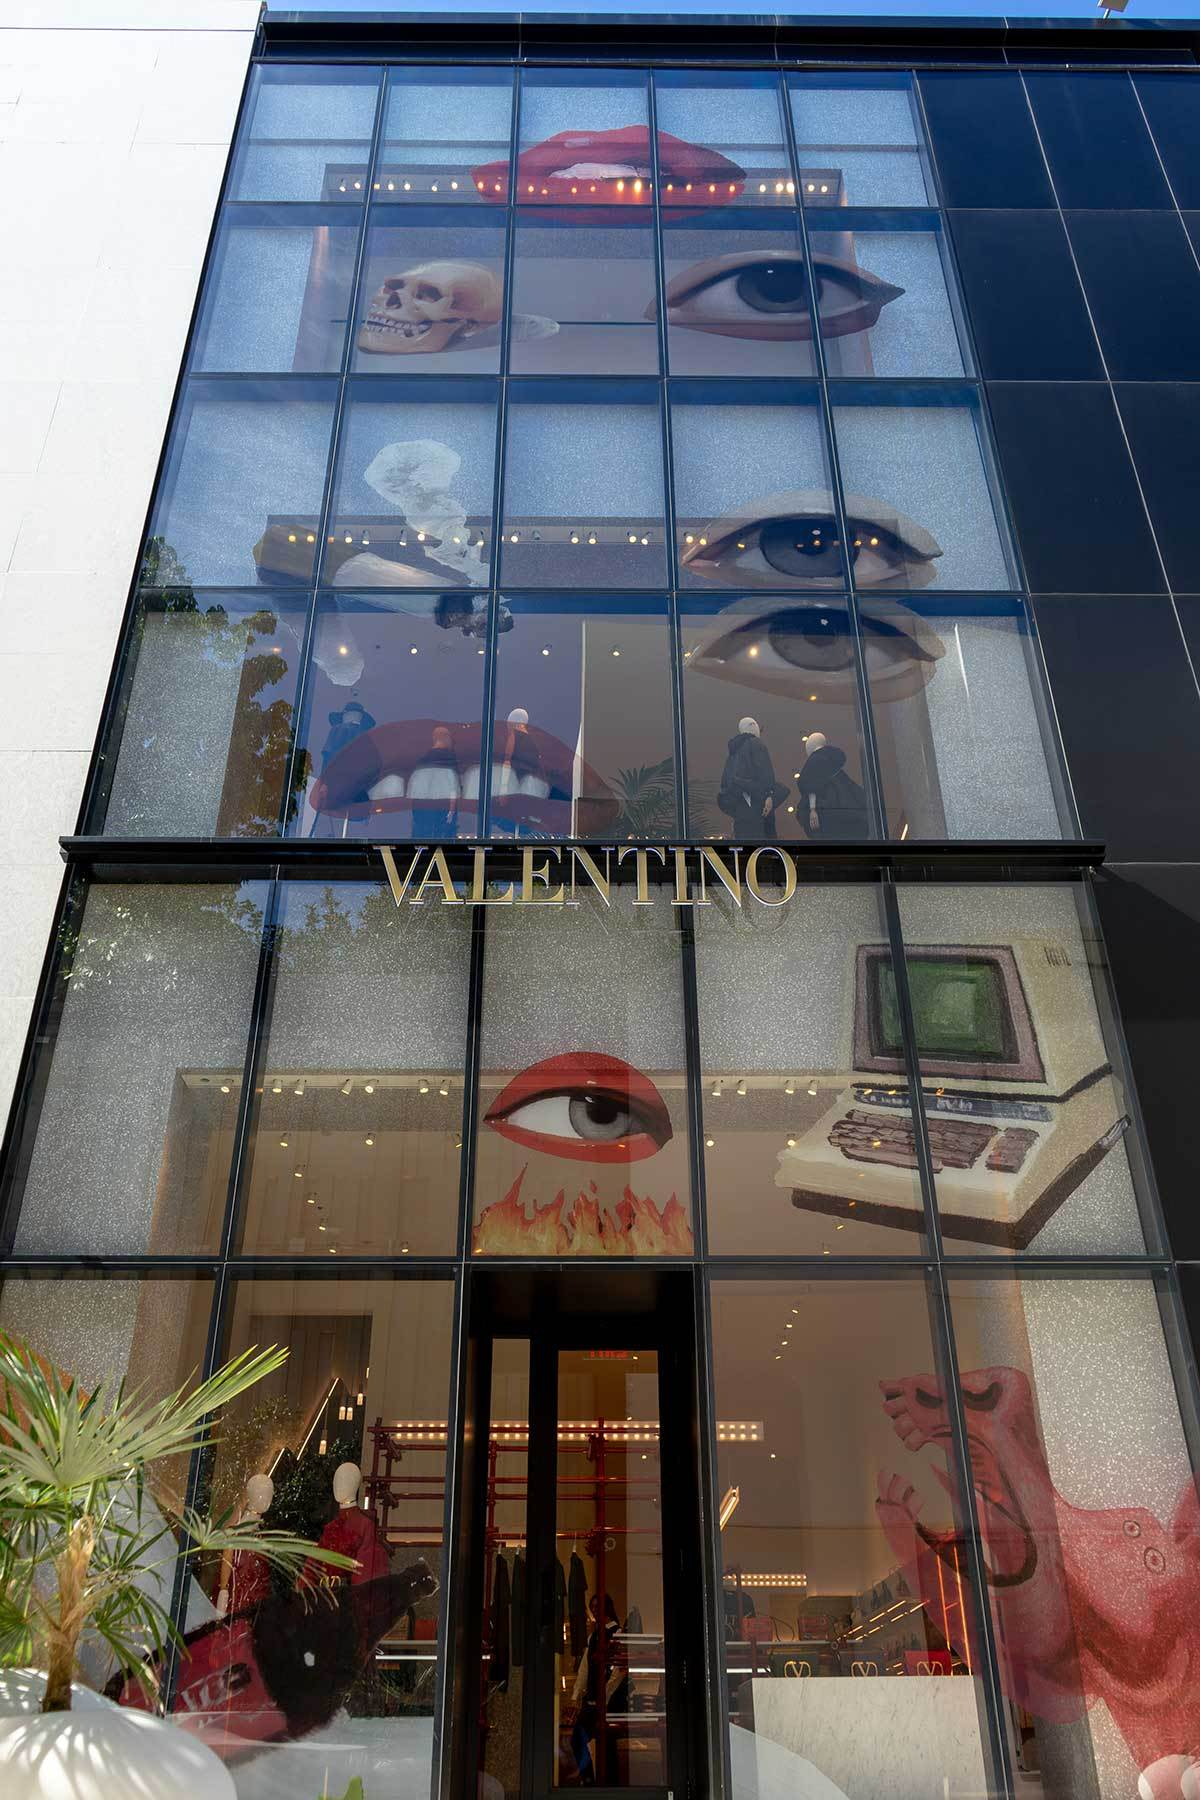 Valentino - Miami Design District Art Basel event window